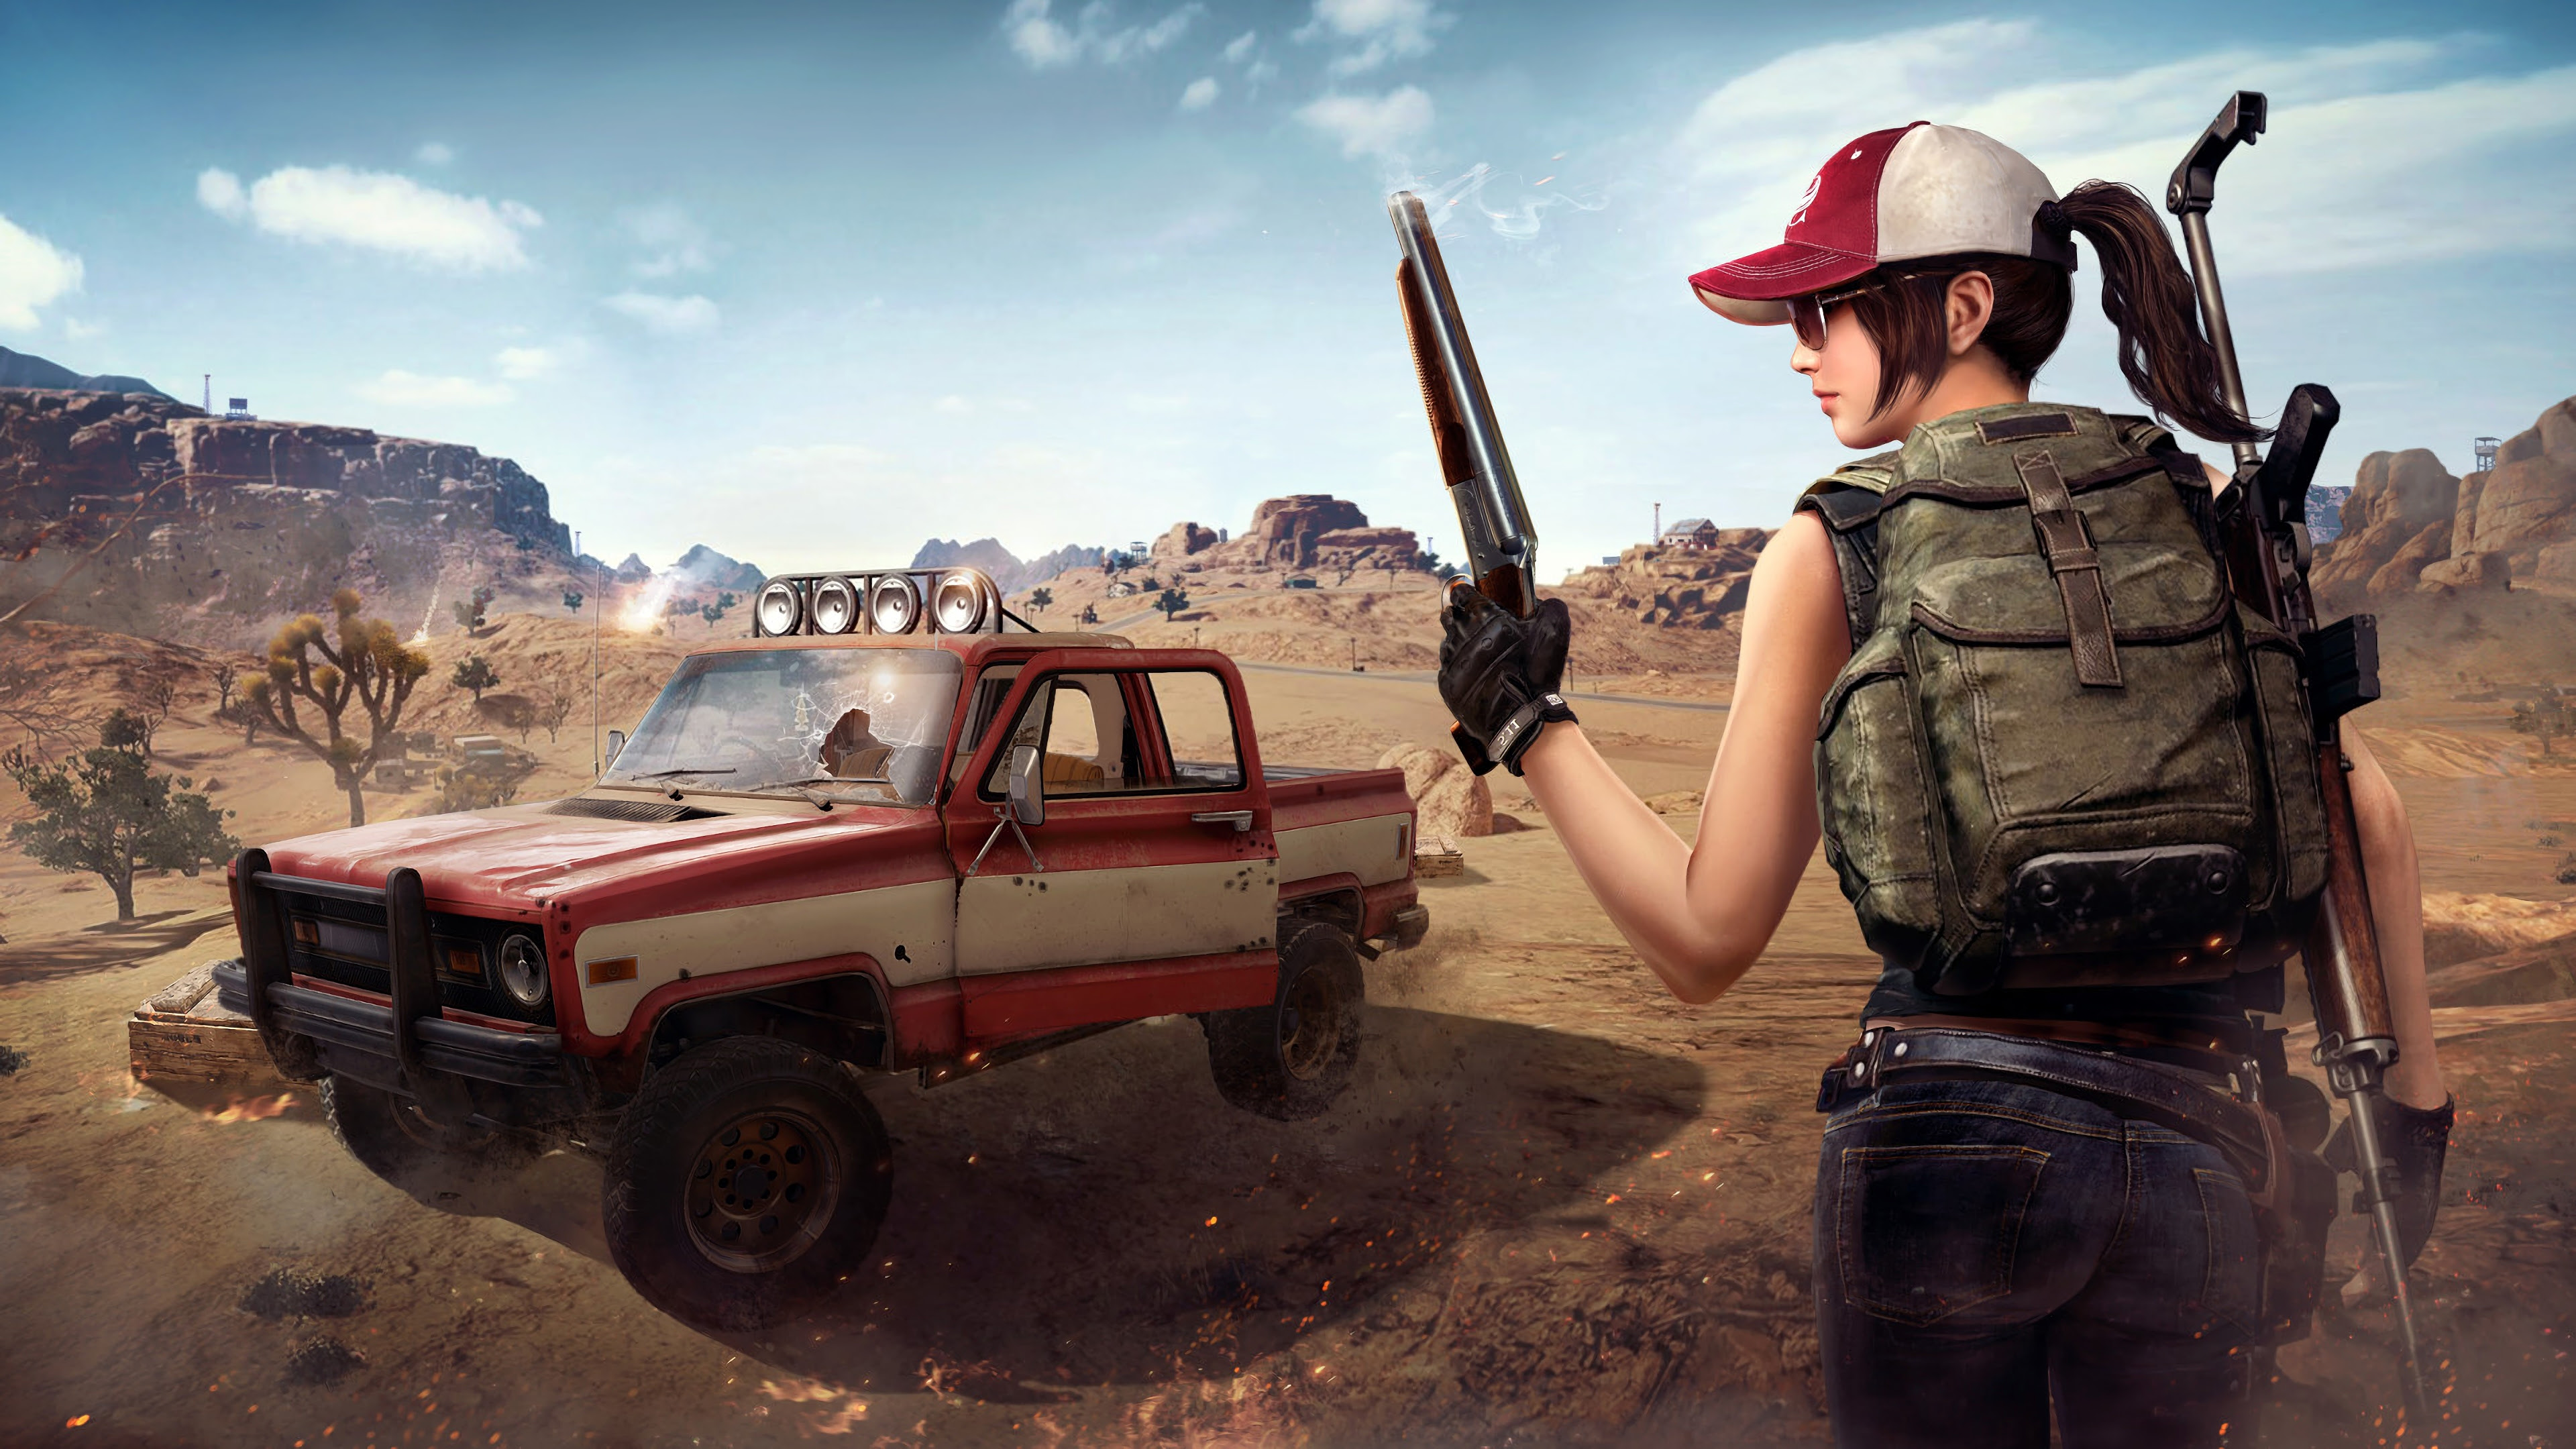 Pubg Wallpaper Hd 4k Android